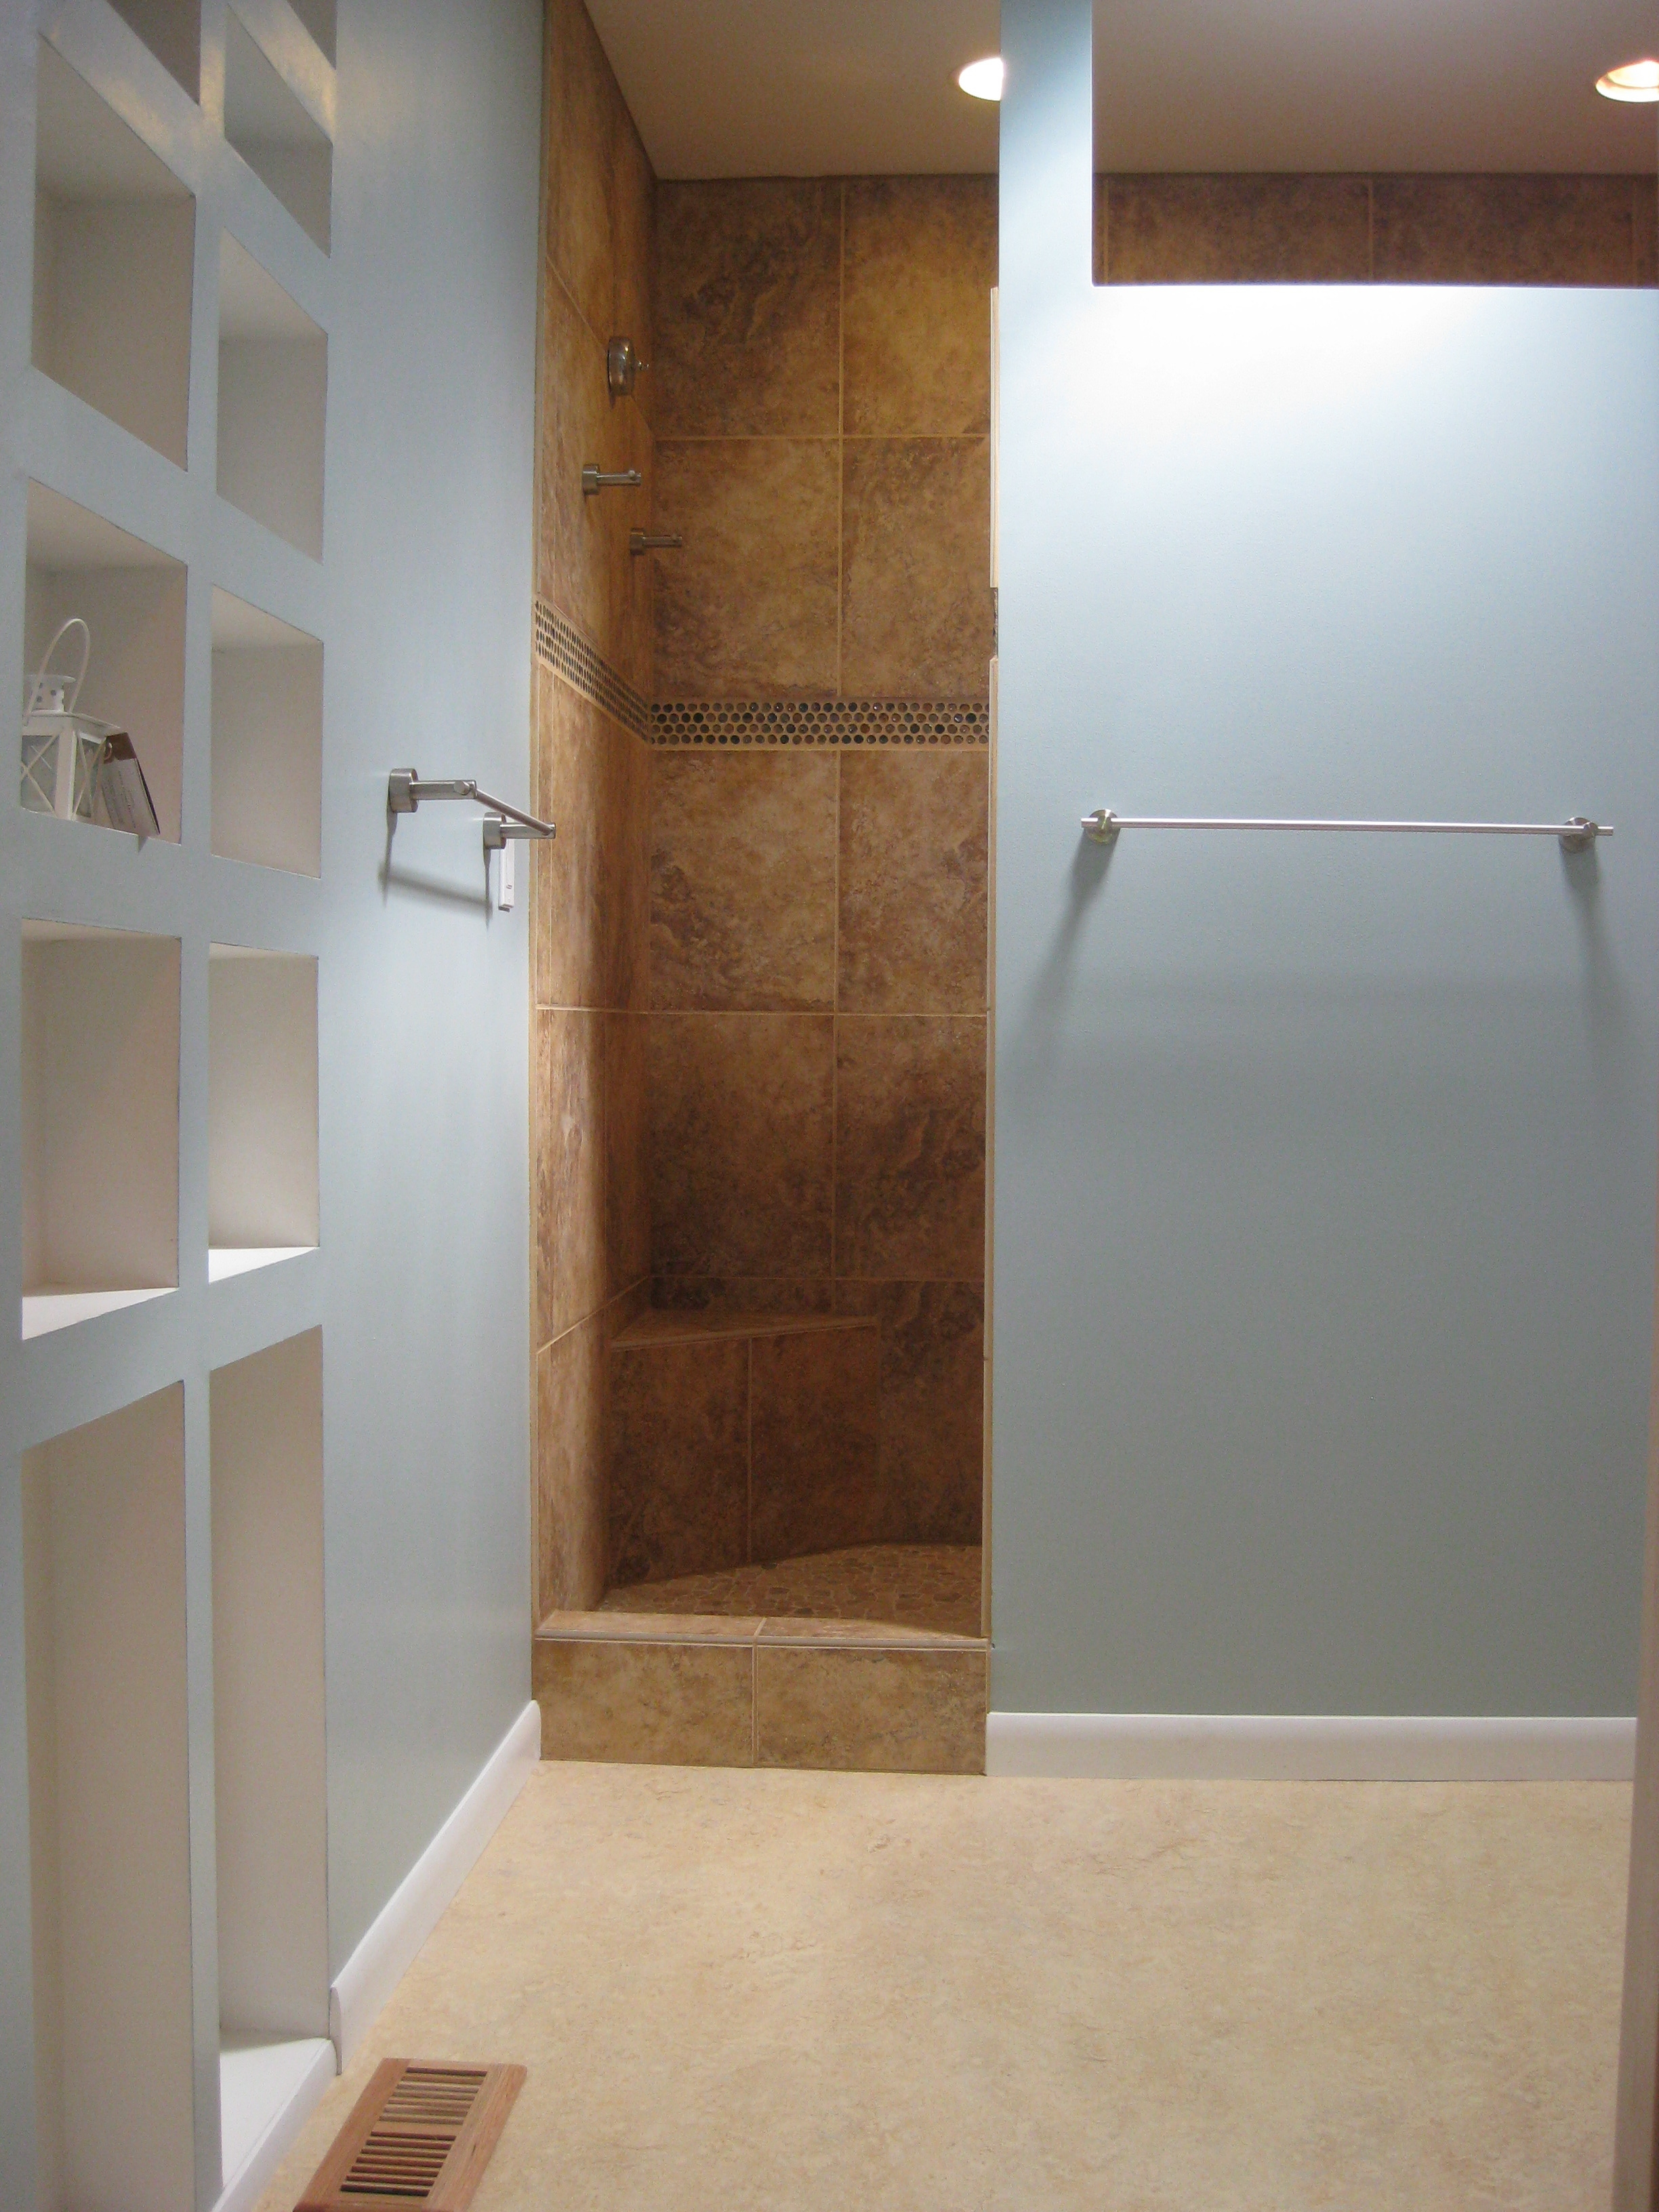 Tile Showers Without Glass Doorselegant small showers without glass doors design ideas open shower